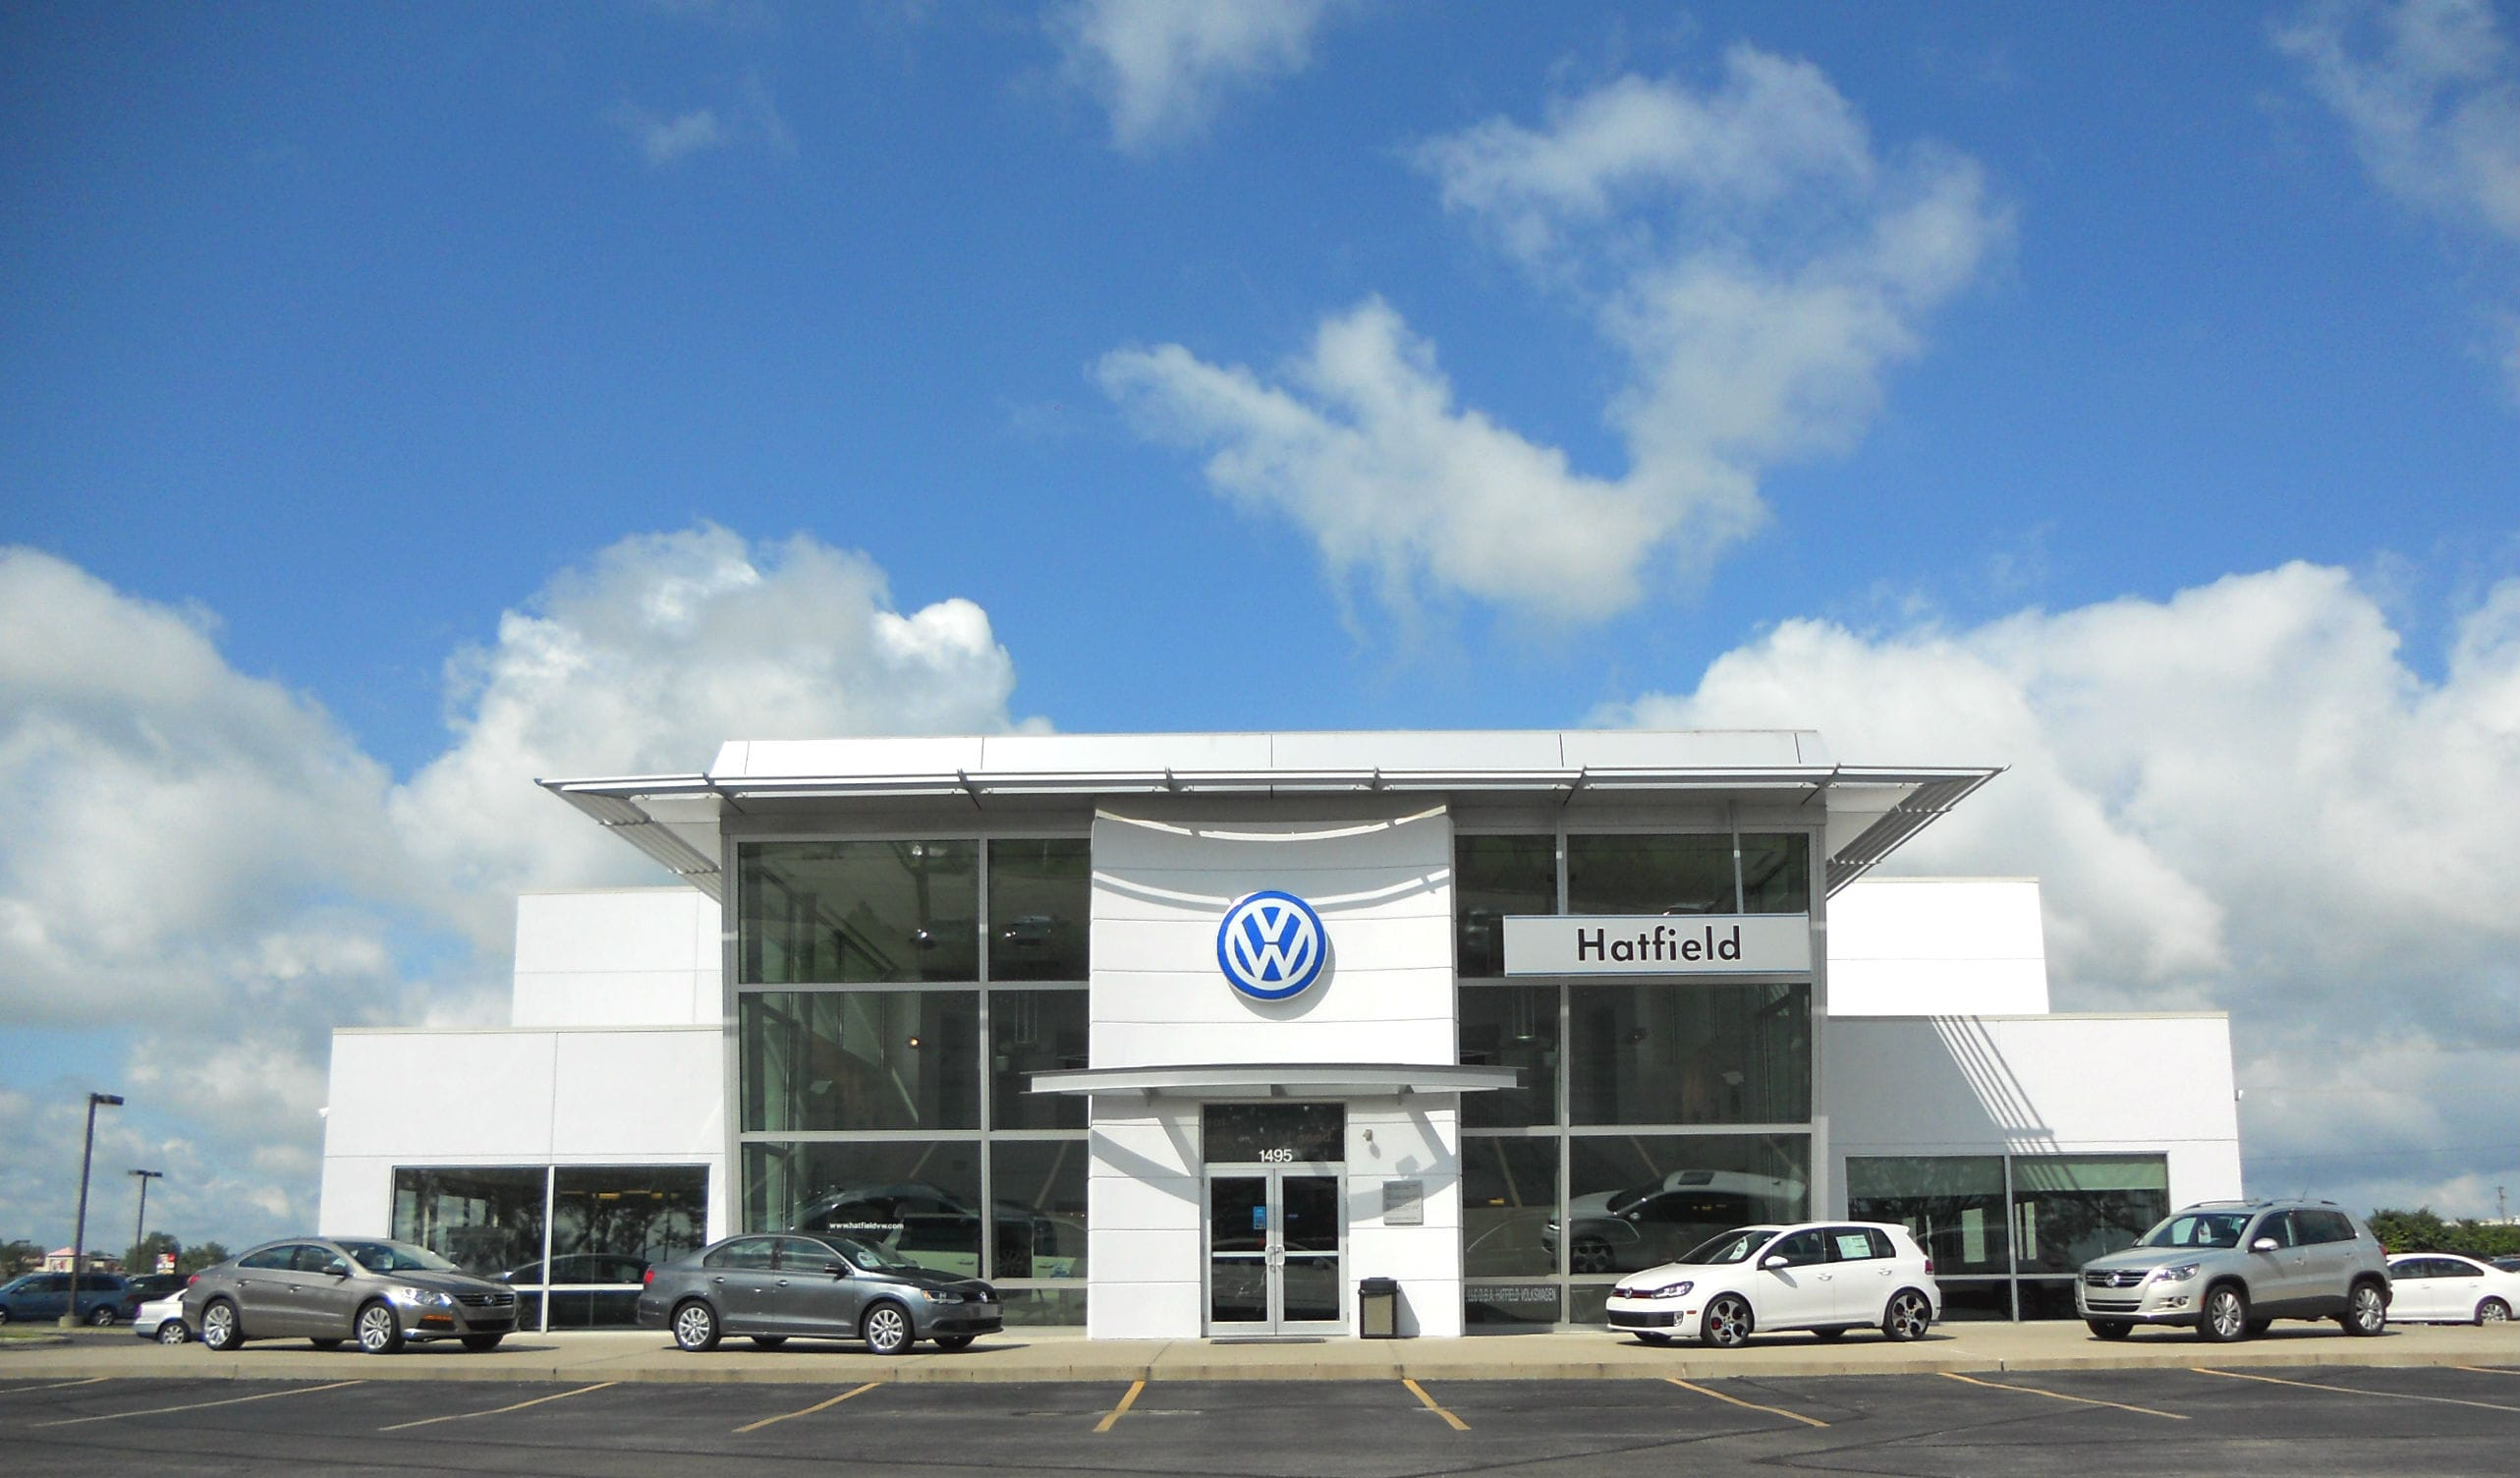 hatfield volkswagen about us new used volkswagen dealer columbus oh. Black Bedroom Furniture Sets. Home Design Ideas